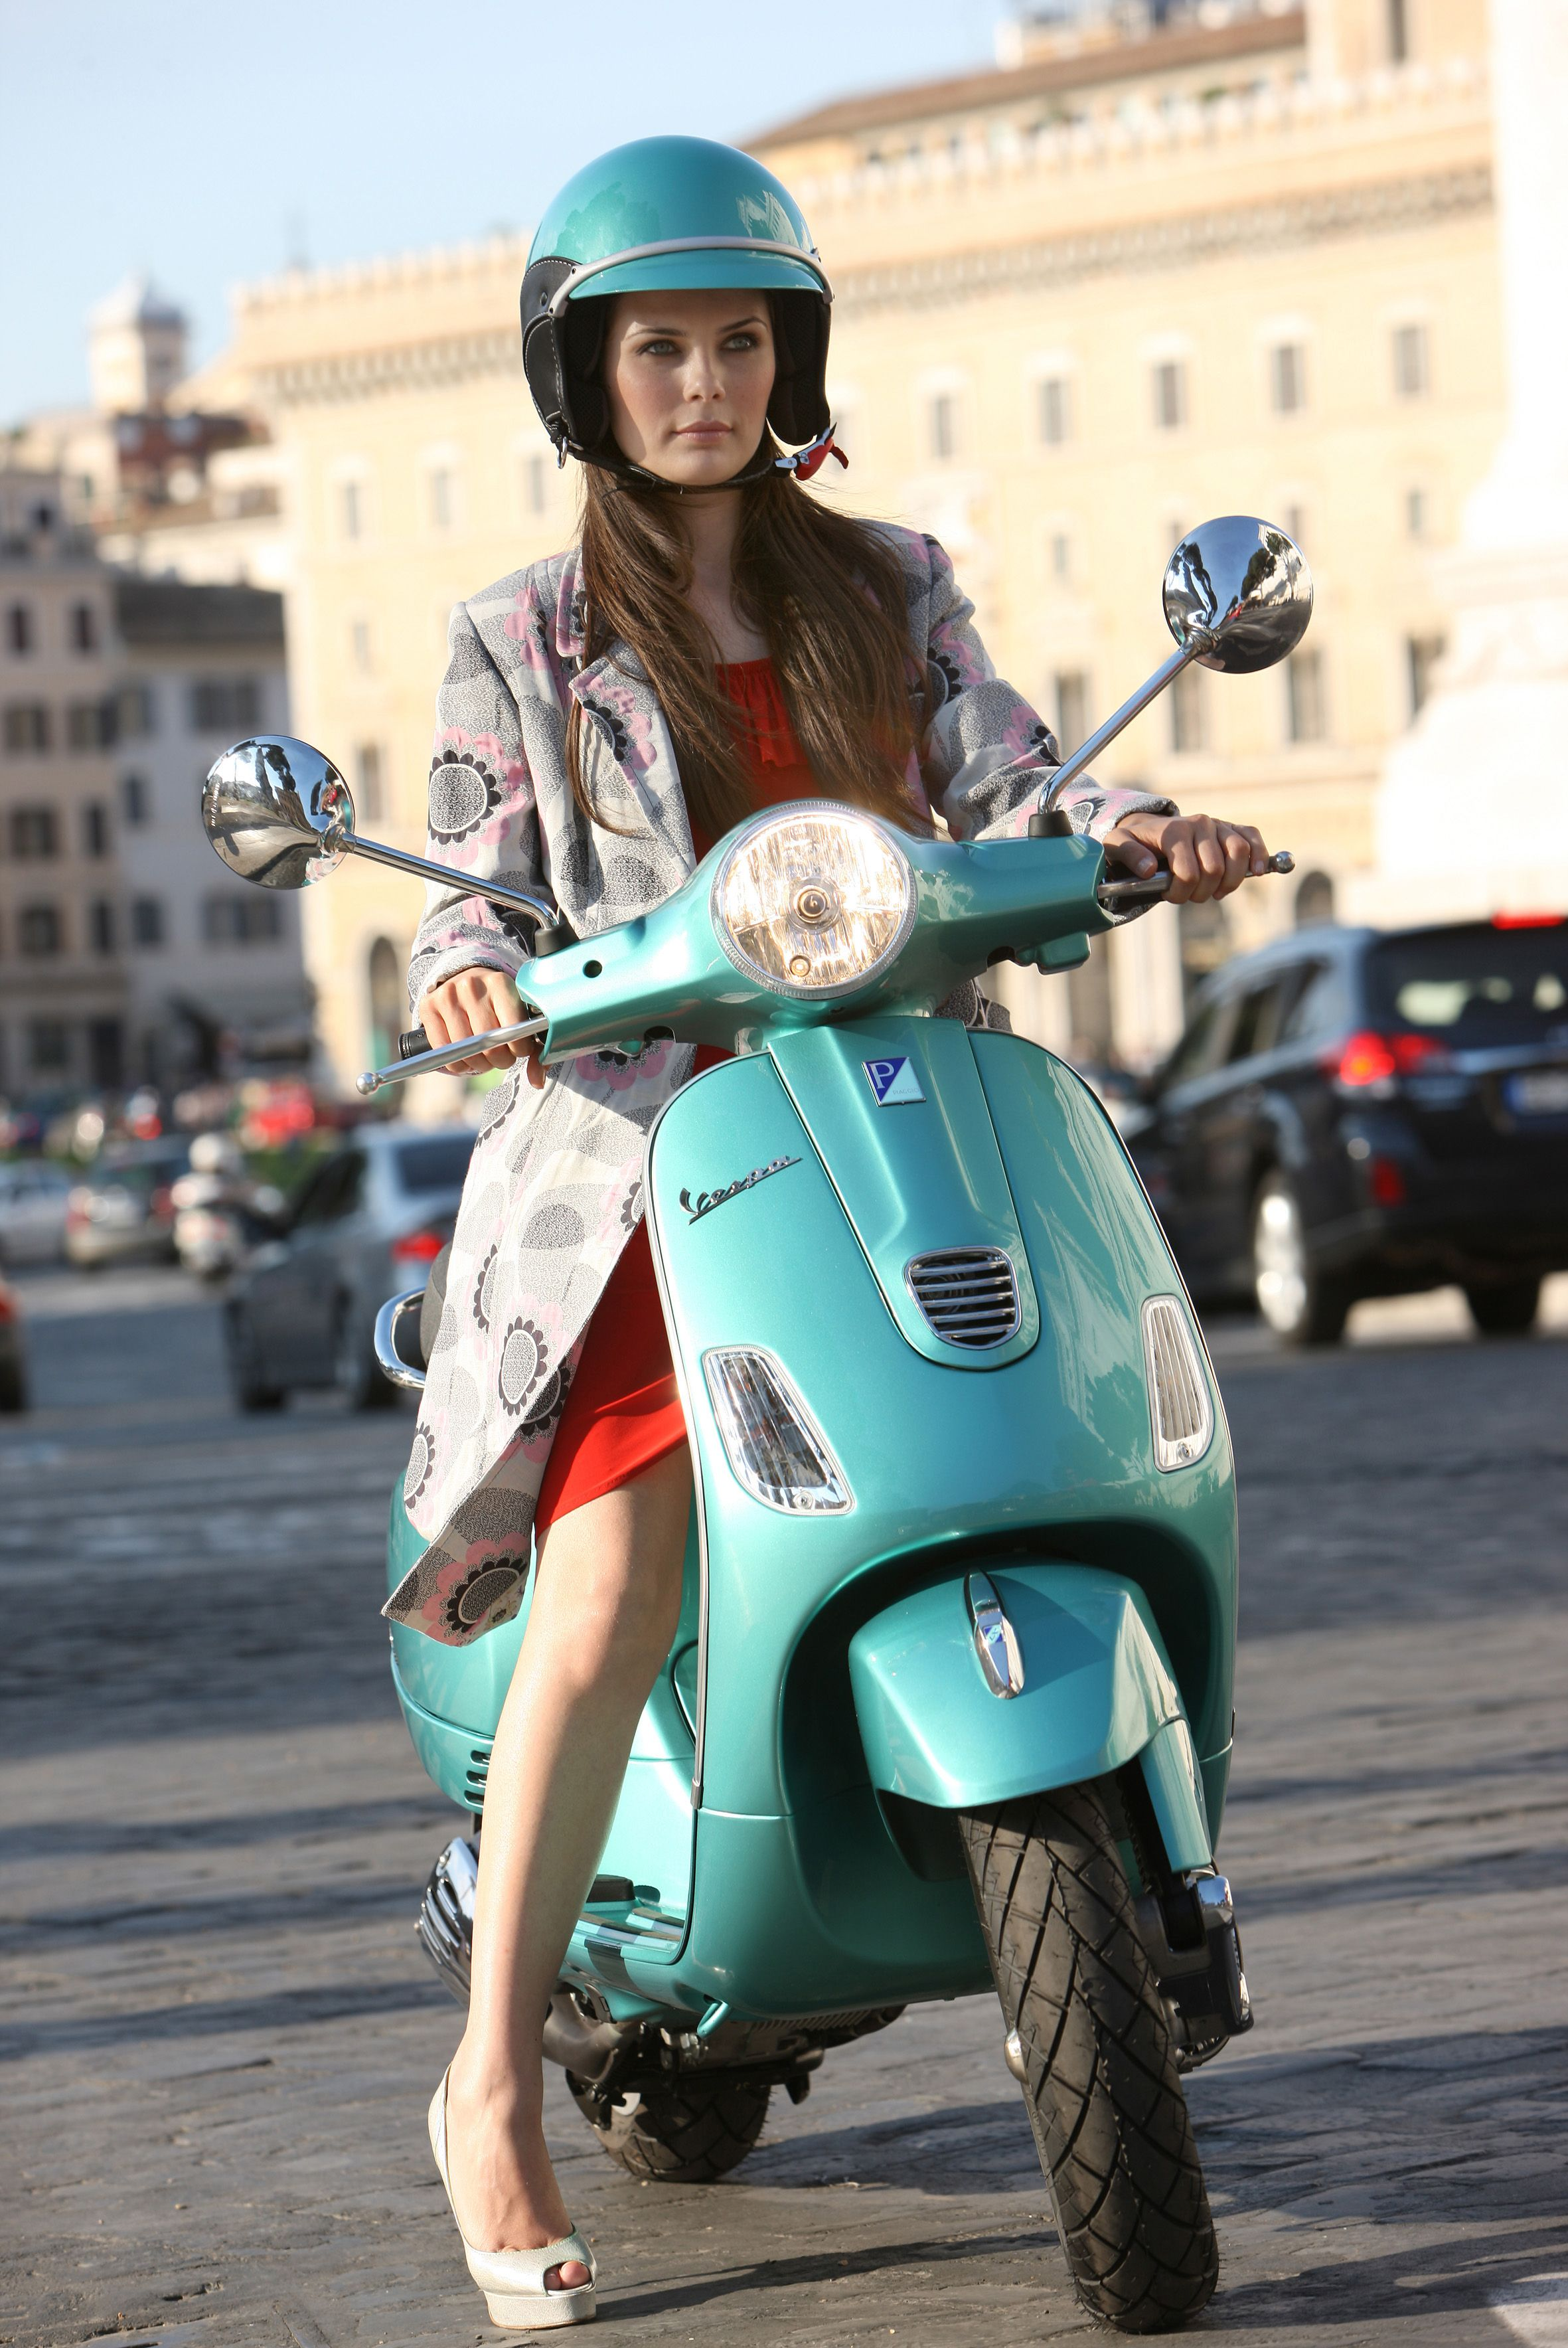 Life On Two Wheels It S A Beautiful Ride Scooter Girl Vespa